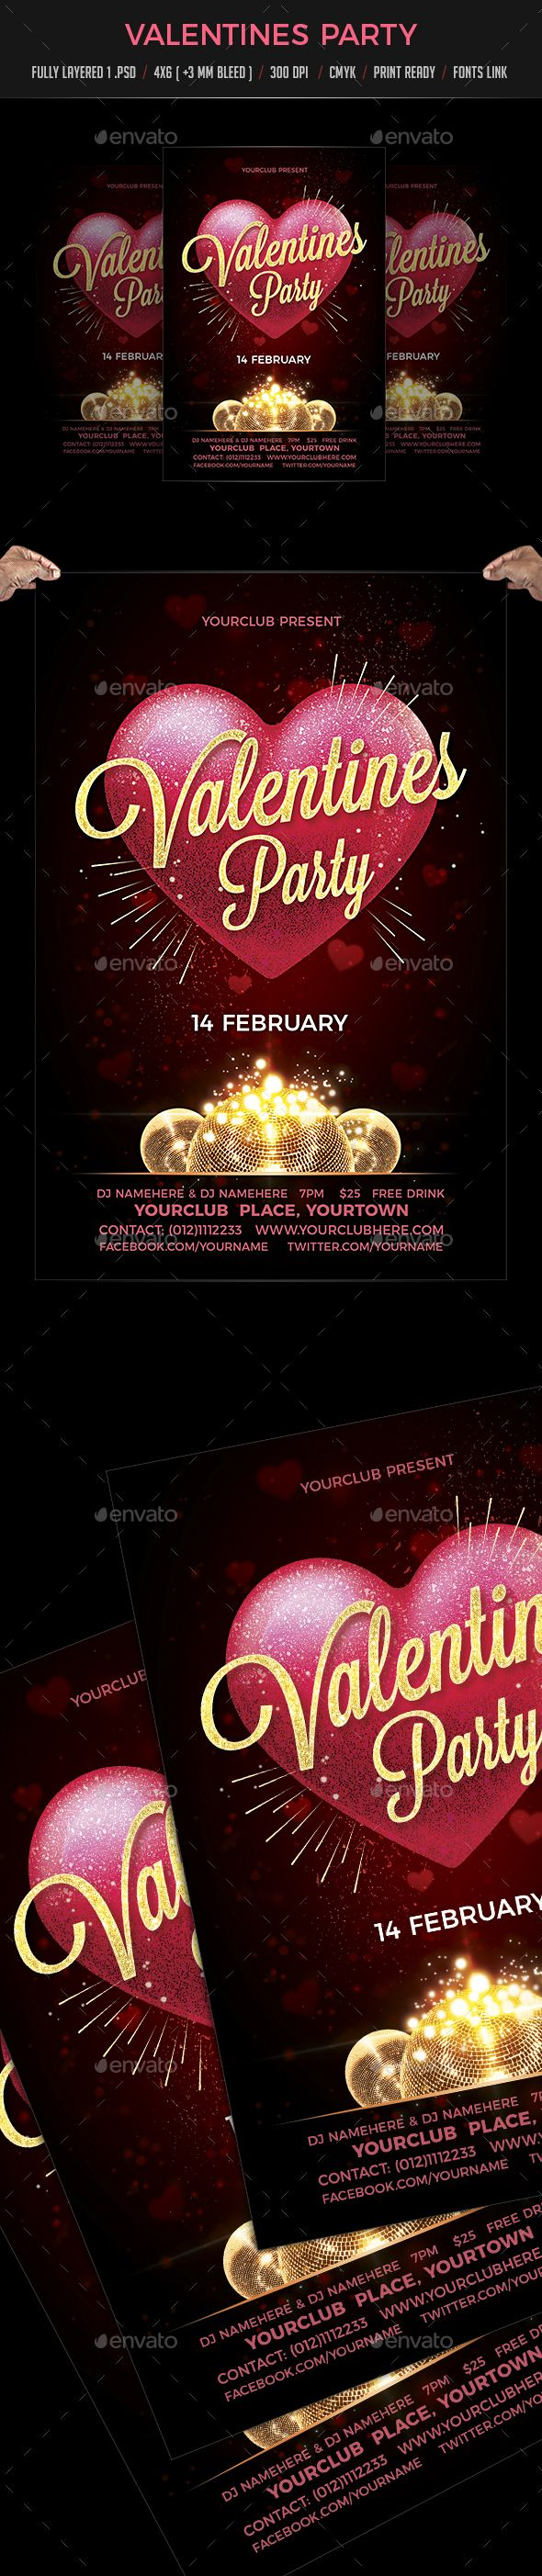 Valentine Day Party Flyer Template PSD #vday #design